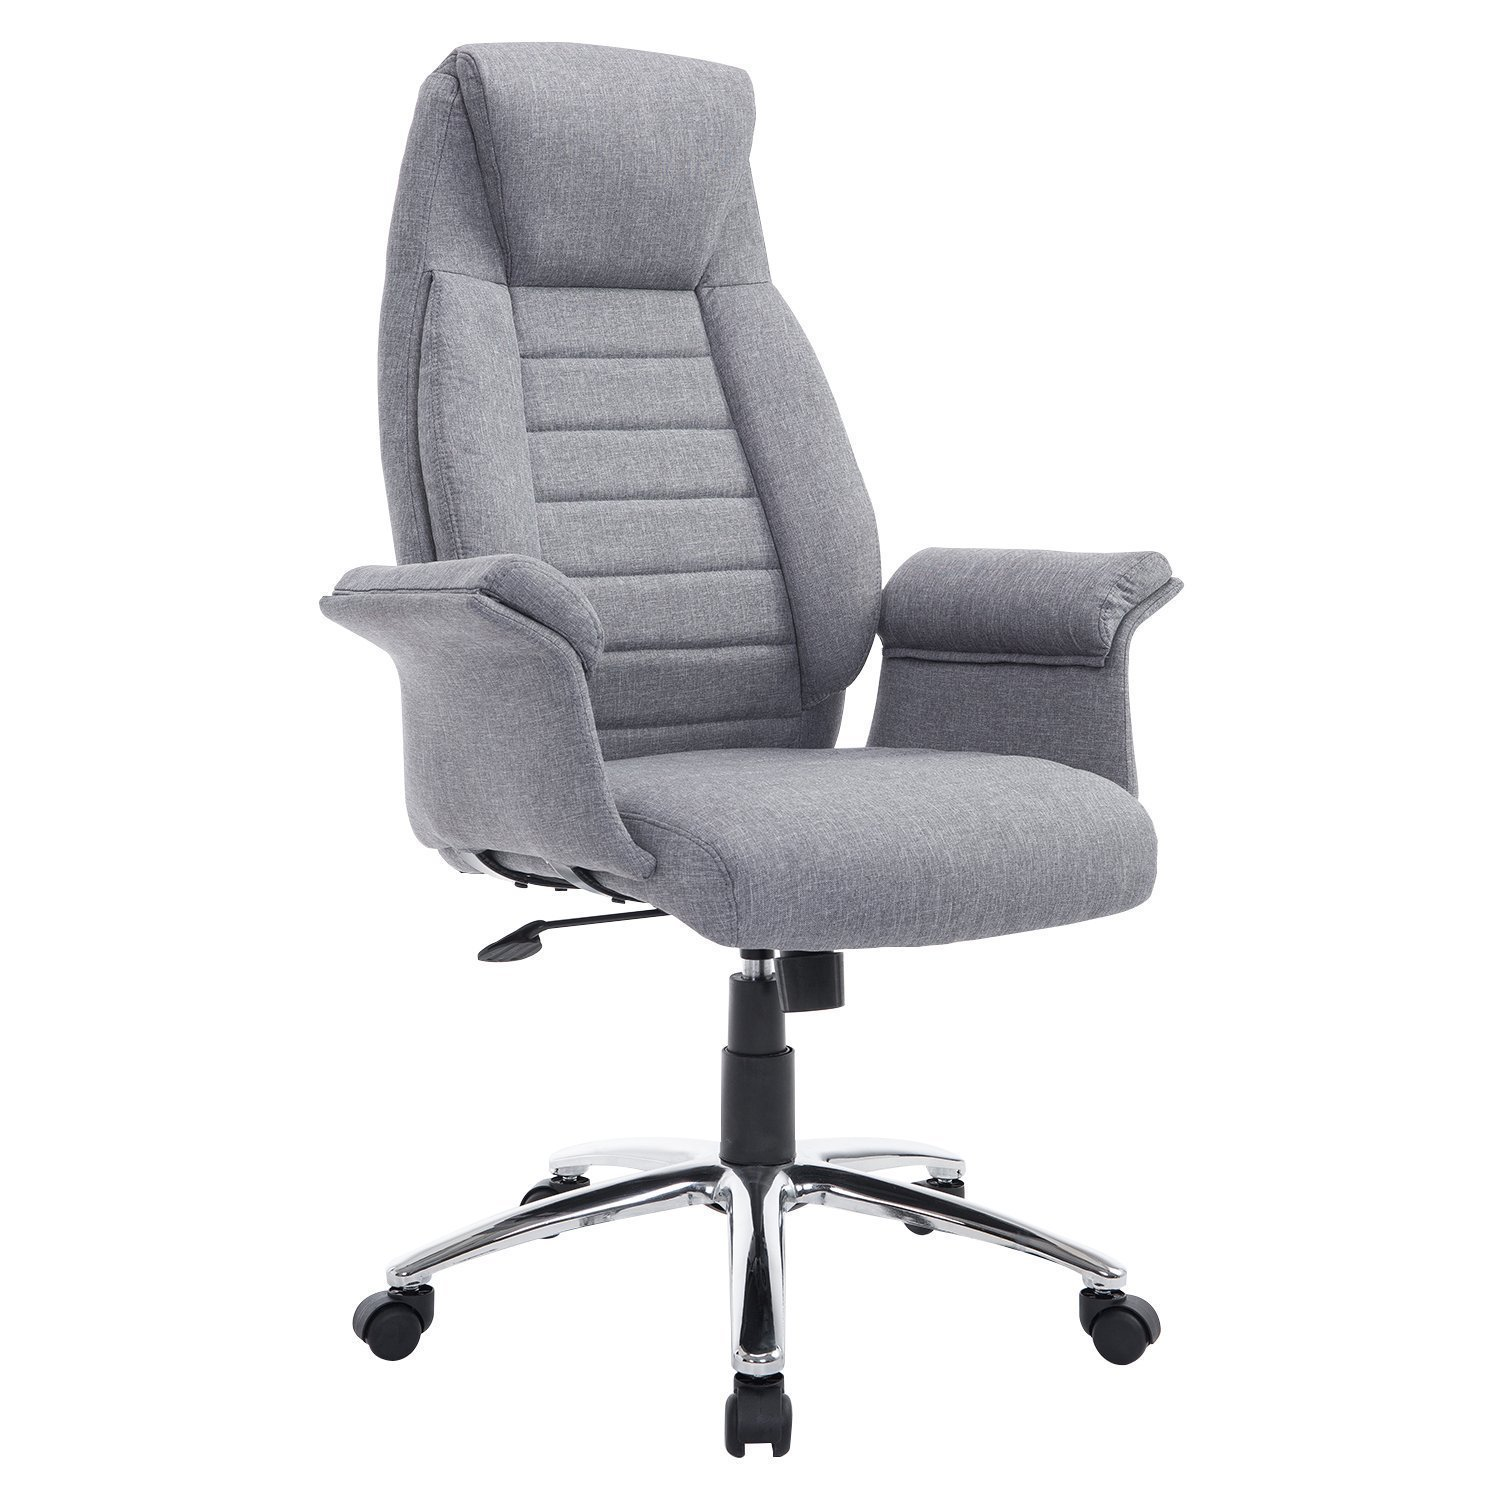 Cloth Covered Office Chairs Homcom High Back Fabric Executive Office Chair Home